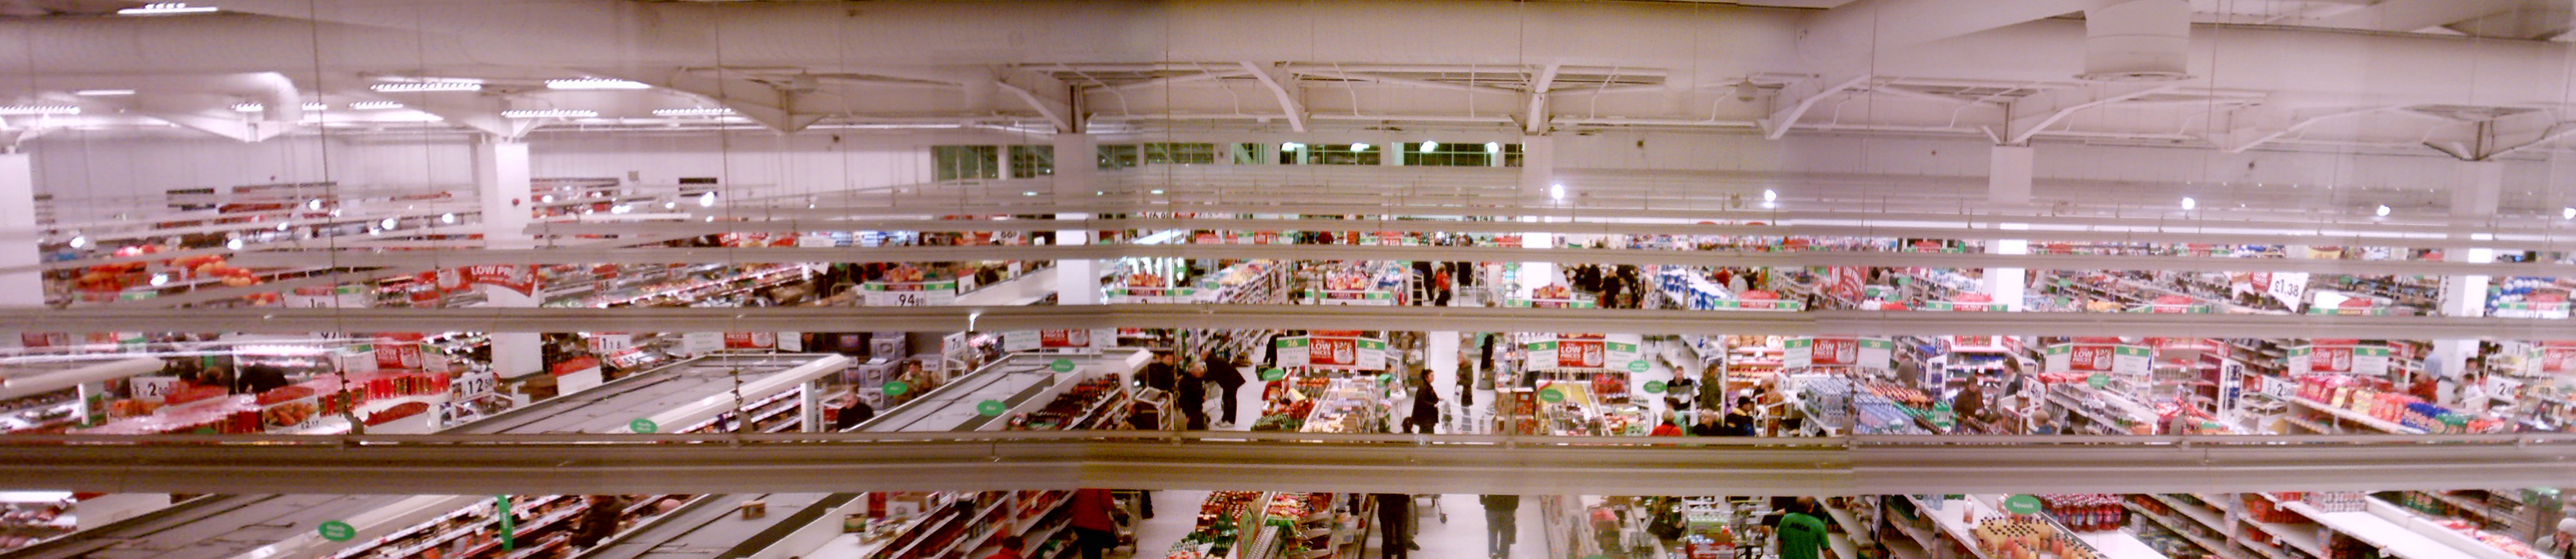 The Interior Of Asda Store In Liscard Wirral Taken From Stores Staff And Visitor Reception Area